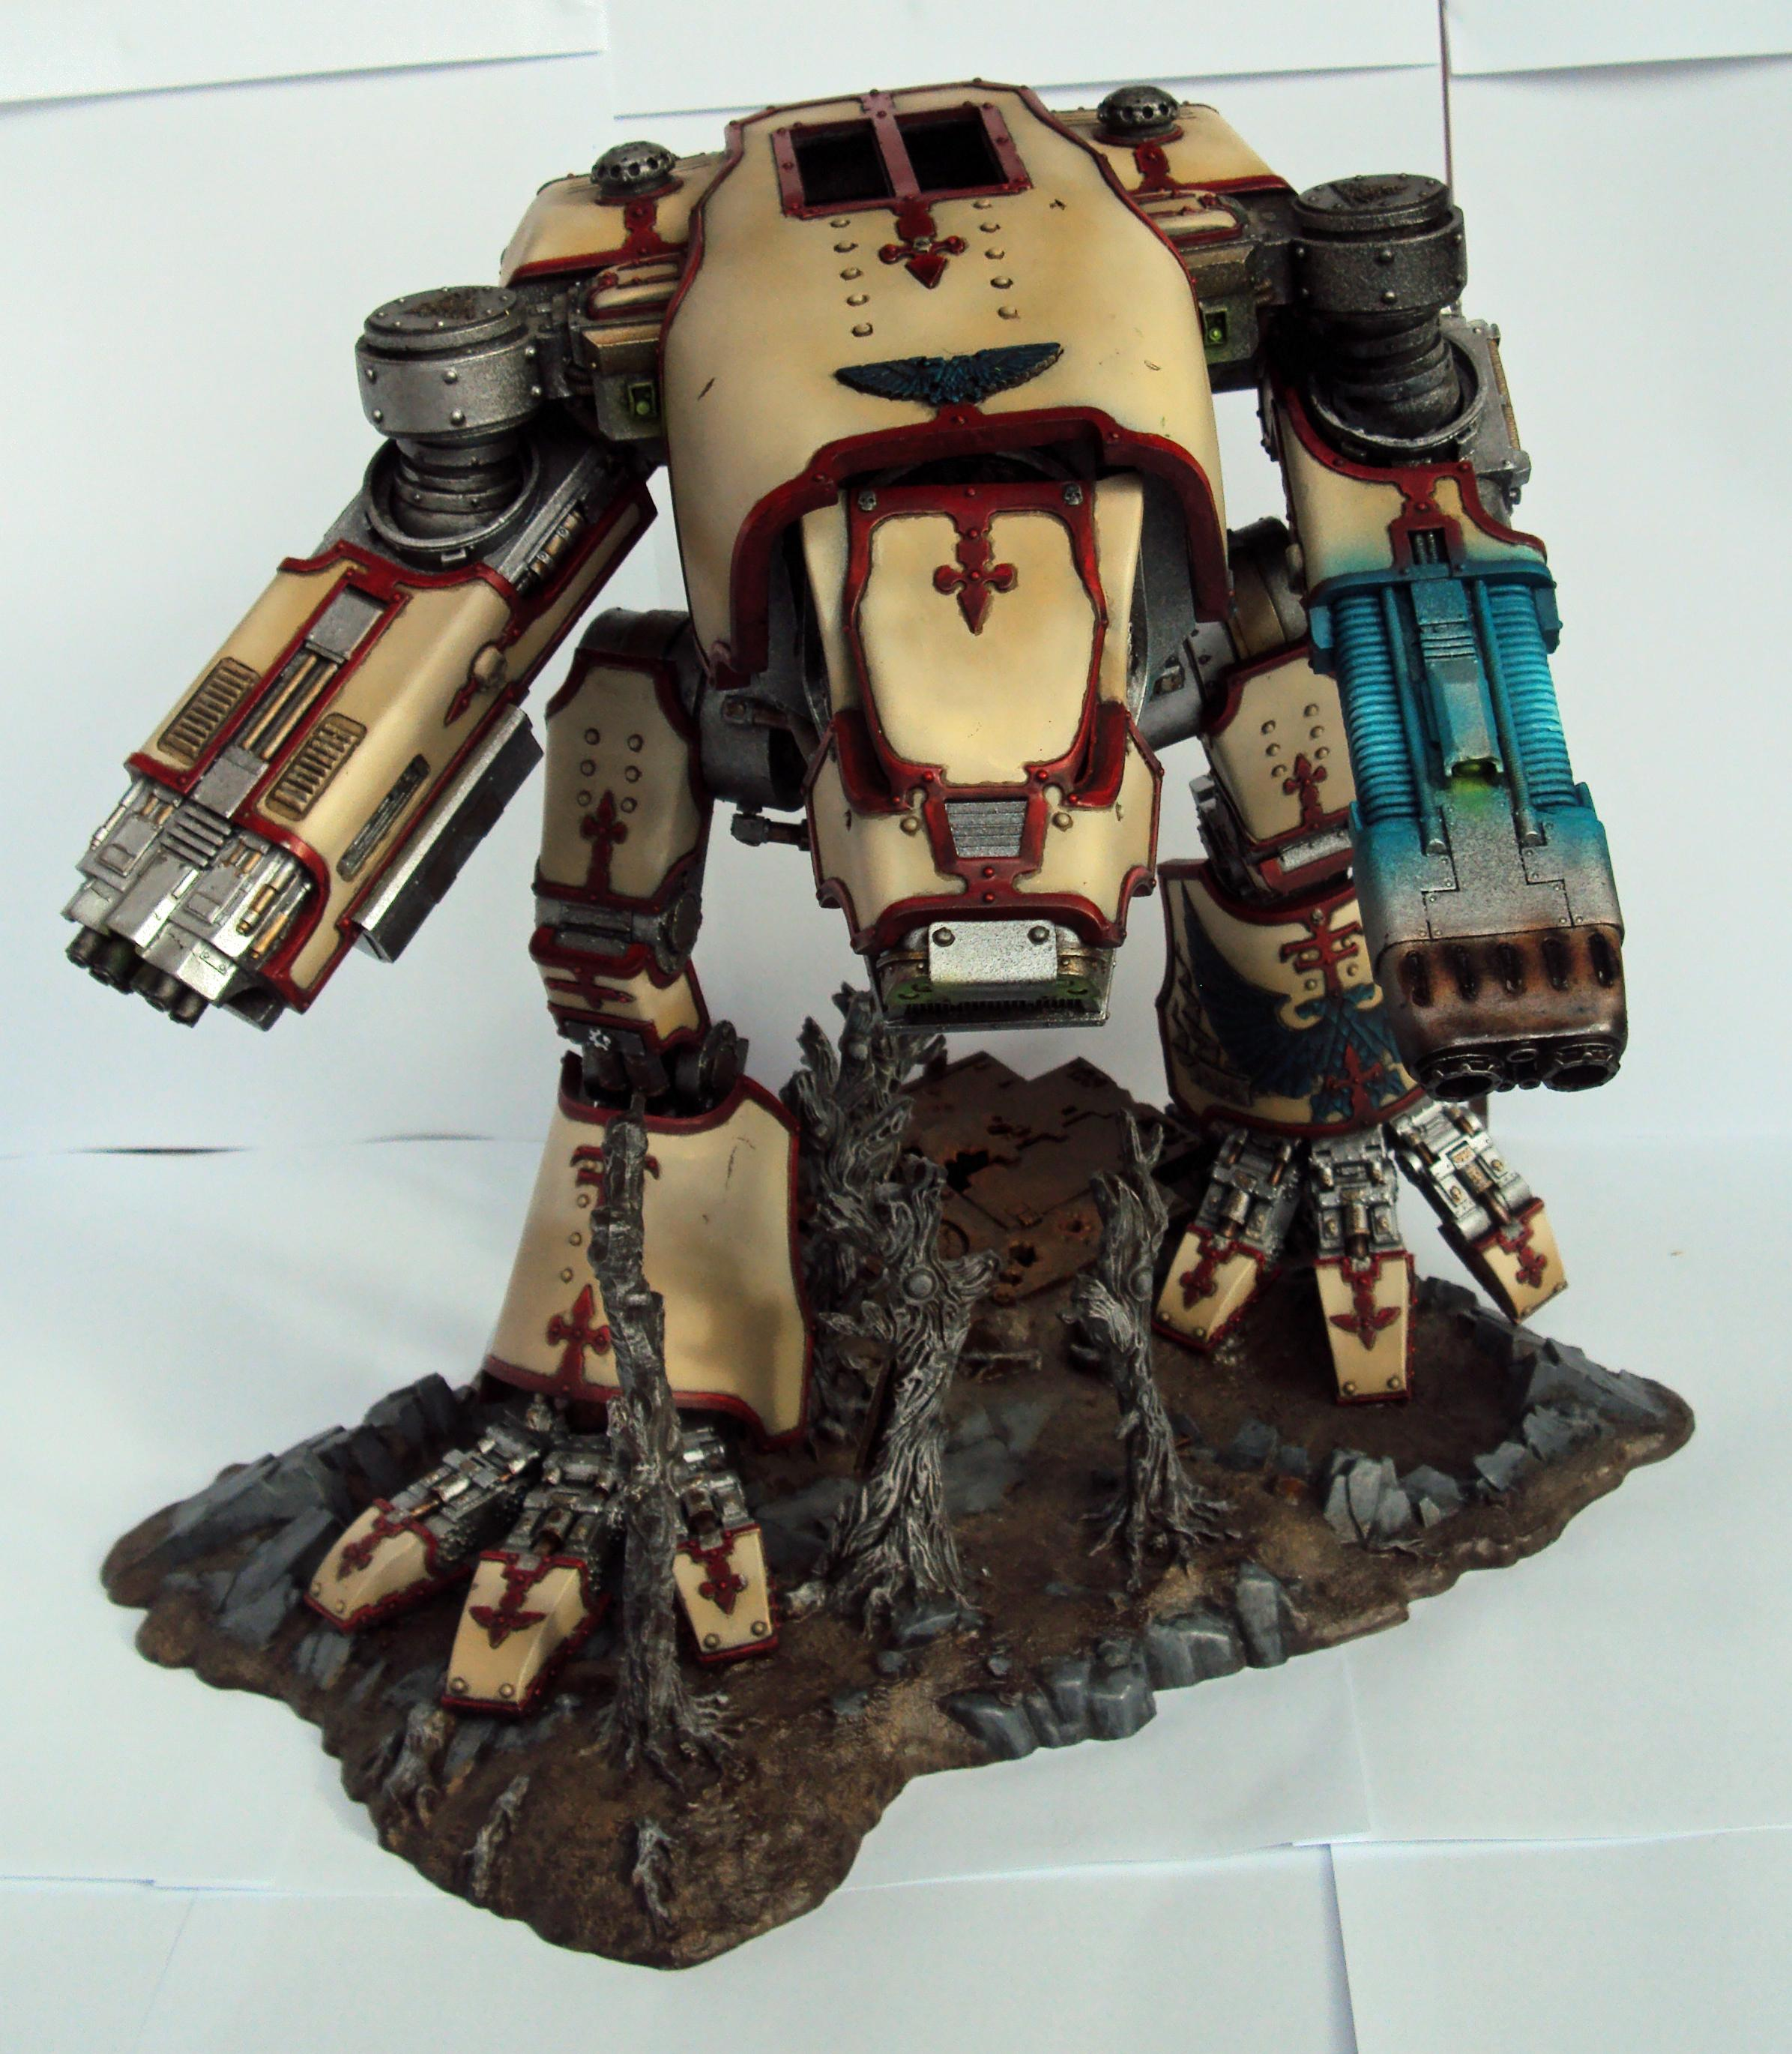 Adeptus Mechanicus, Super-heavy, Warhammer 40,000, Warhound